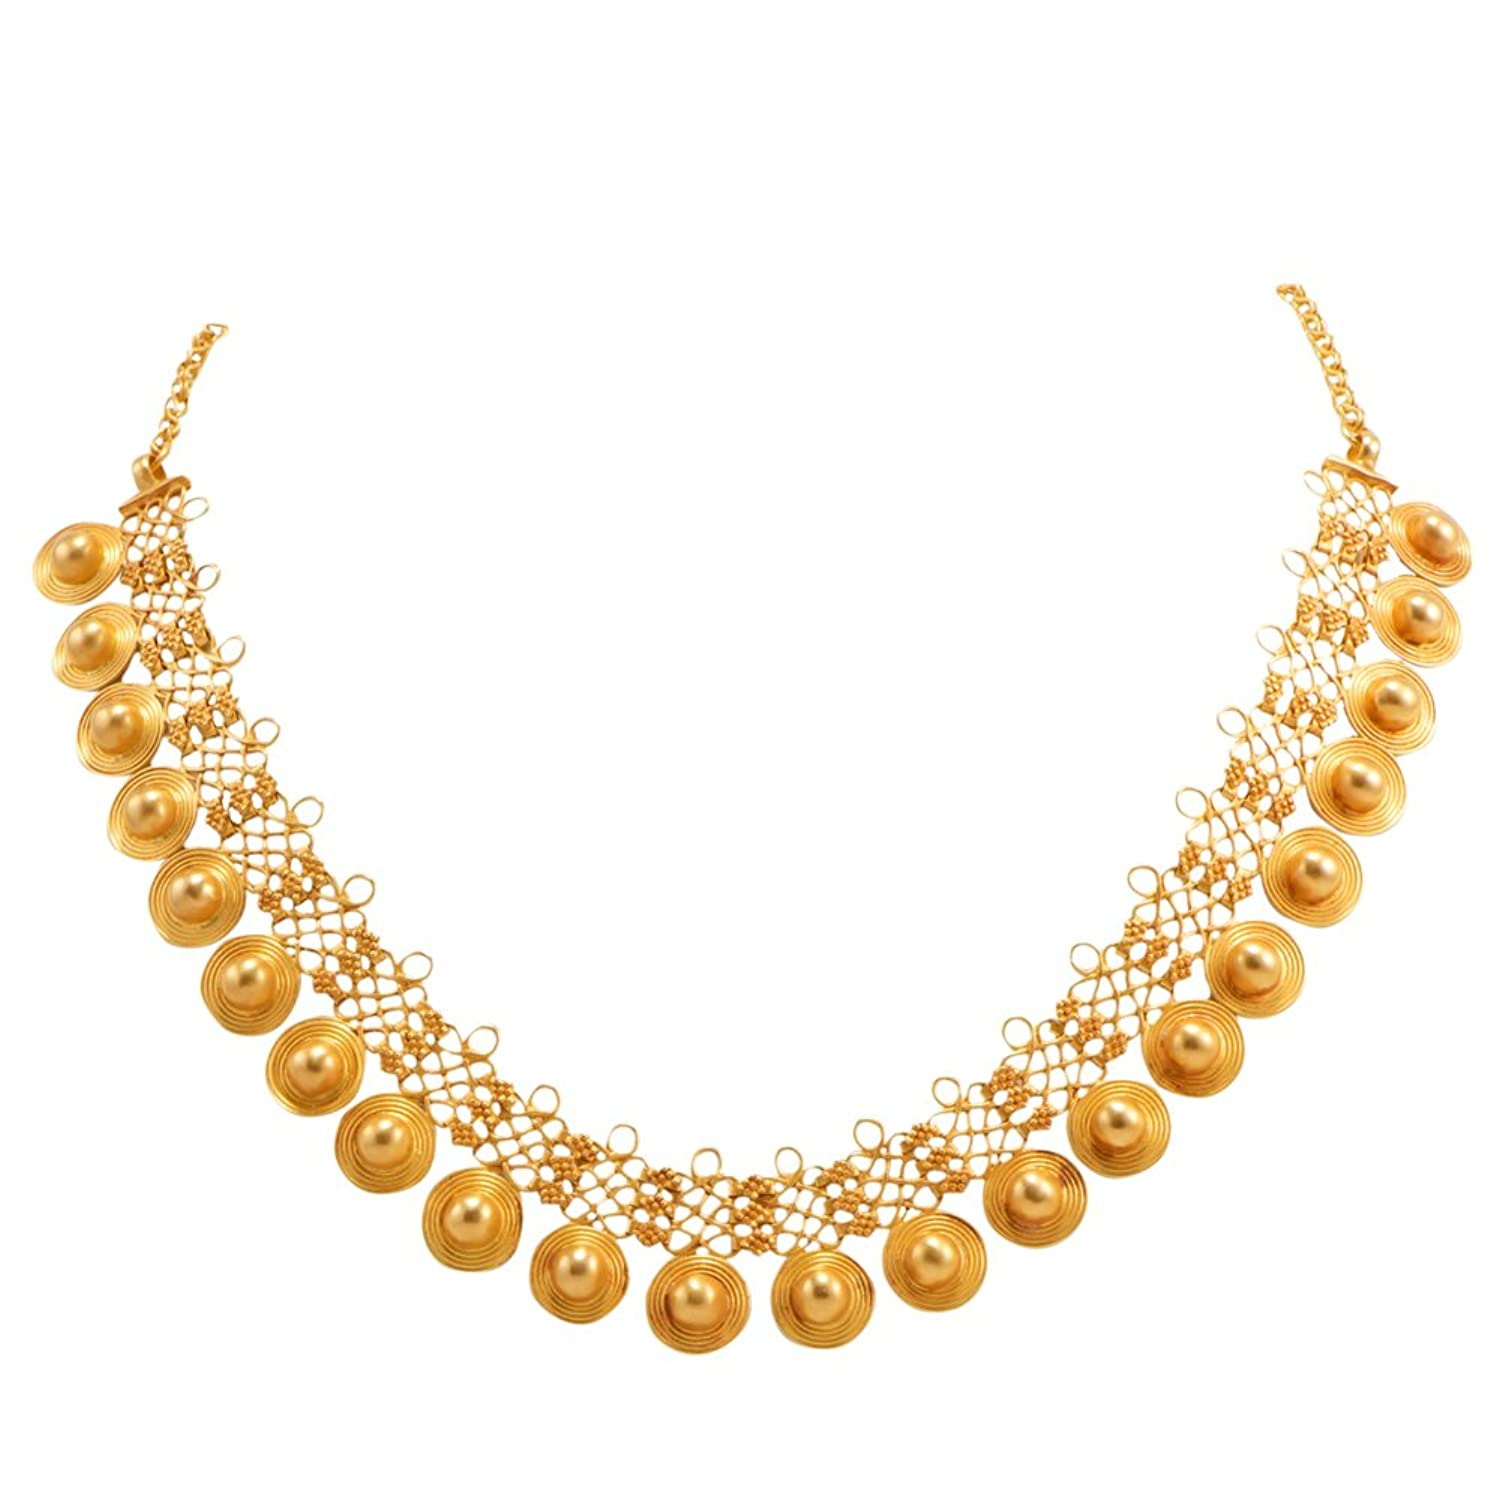 designs gold weight light jewellery watch necklace youtube